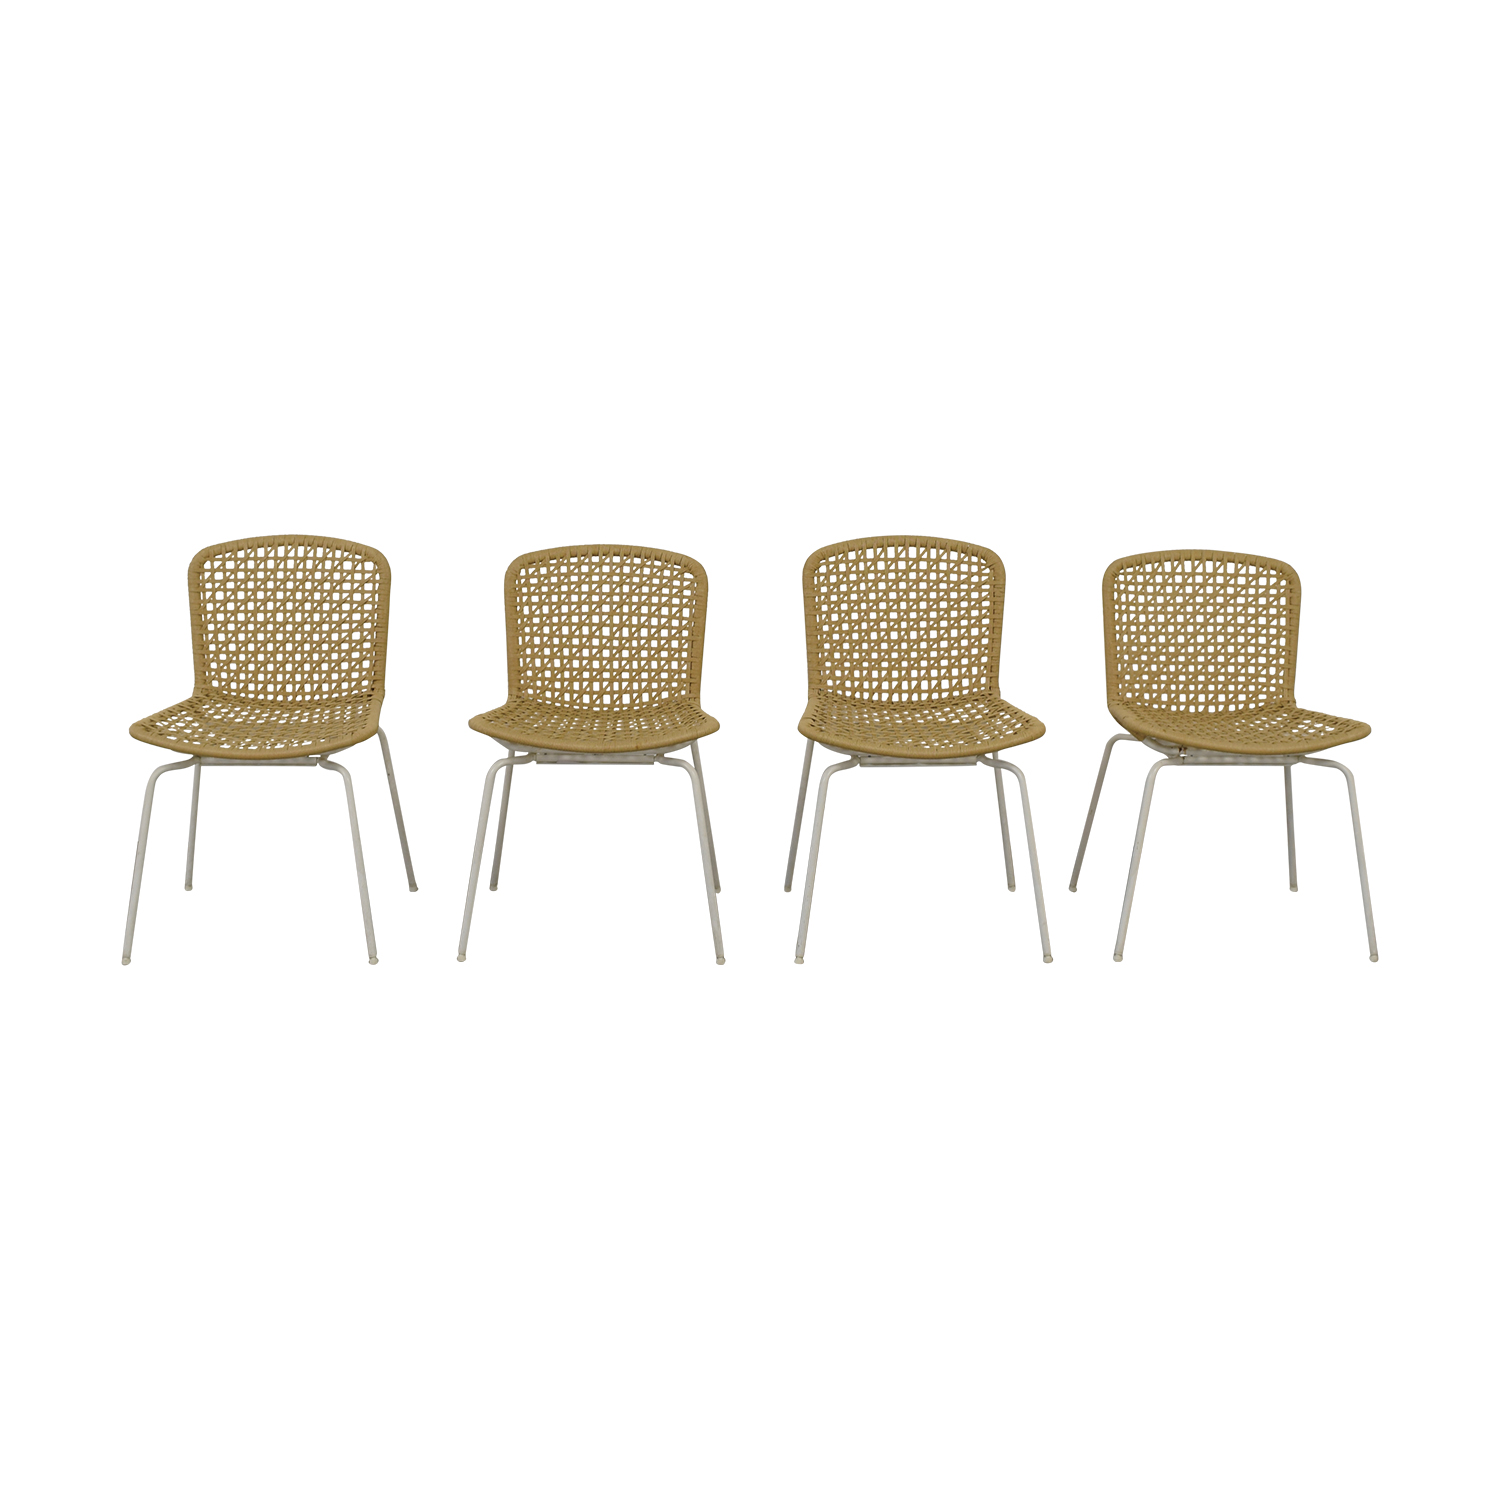 Pottery Barn Wicker Chair Dining Chairs Used Dining Chairs For Sale